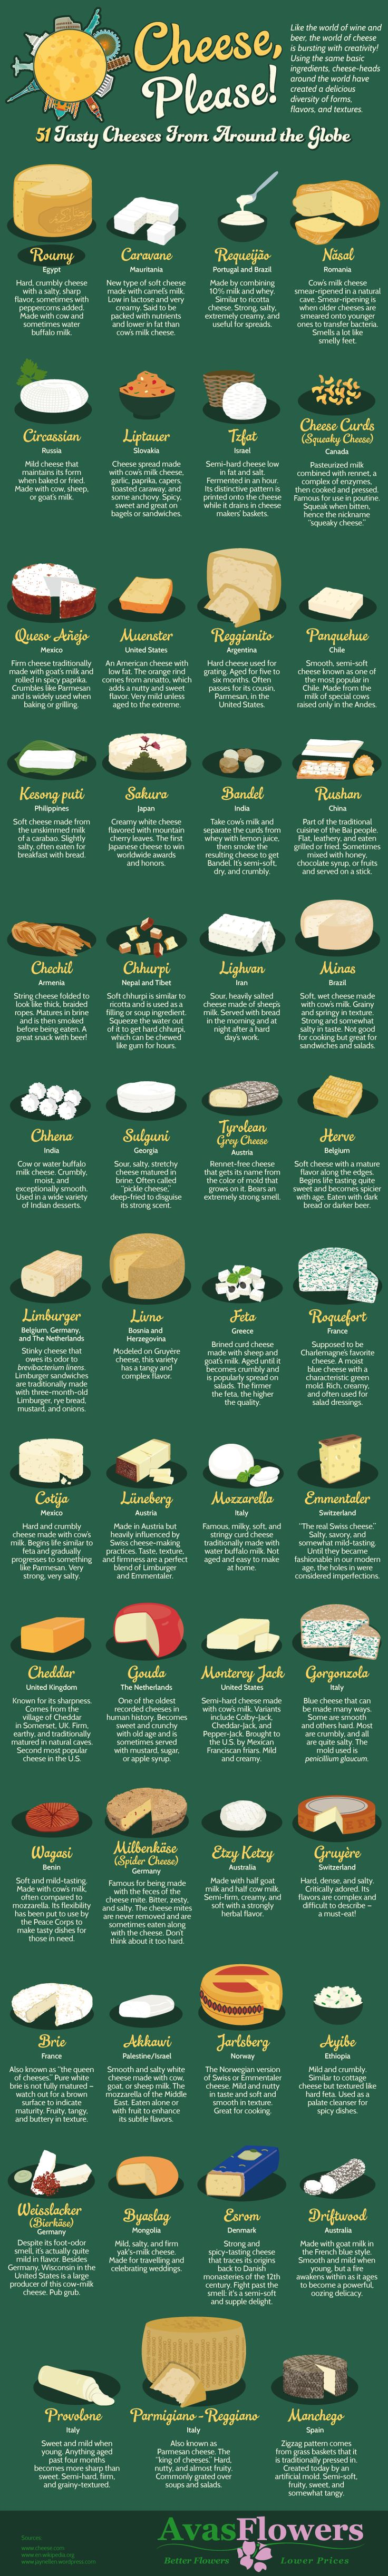 Cheese, Please! 51 Tasty Cheeses From Around the Globe #Infographic #Food #Travel                                                                                                                                                                                 More